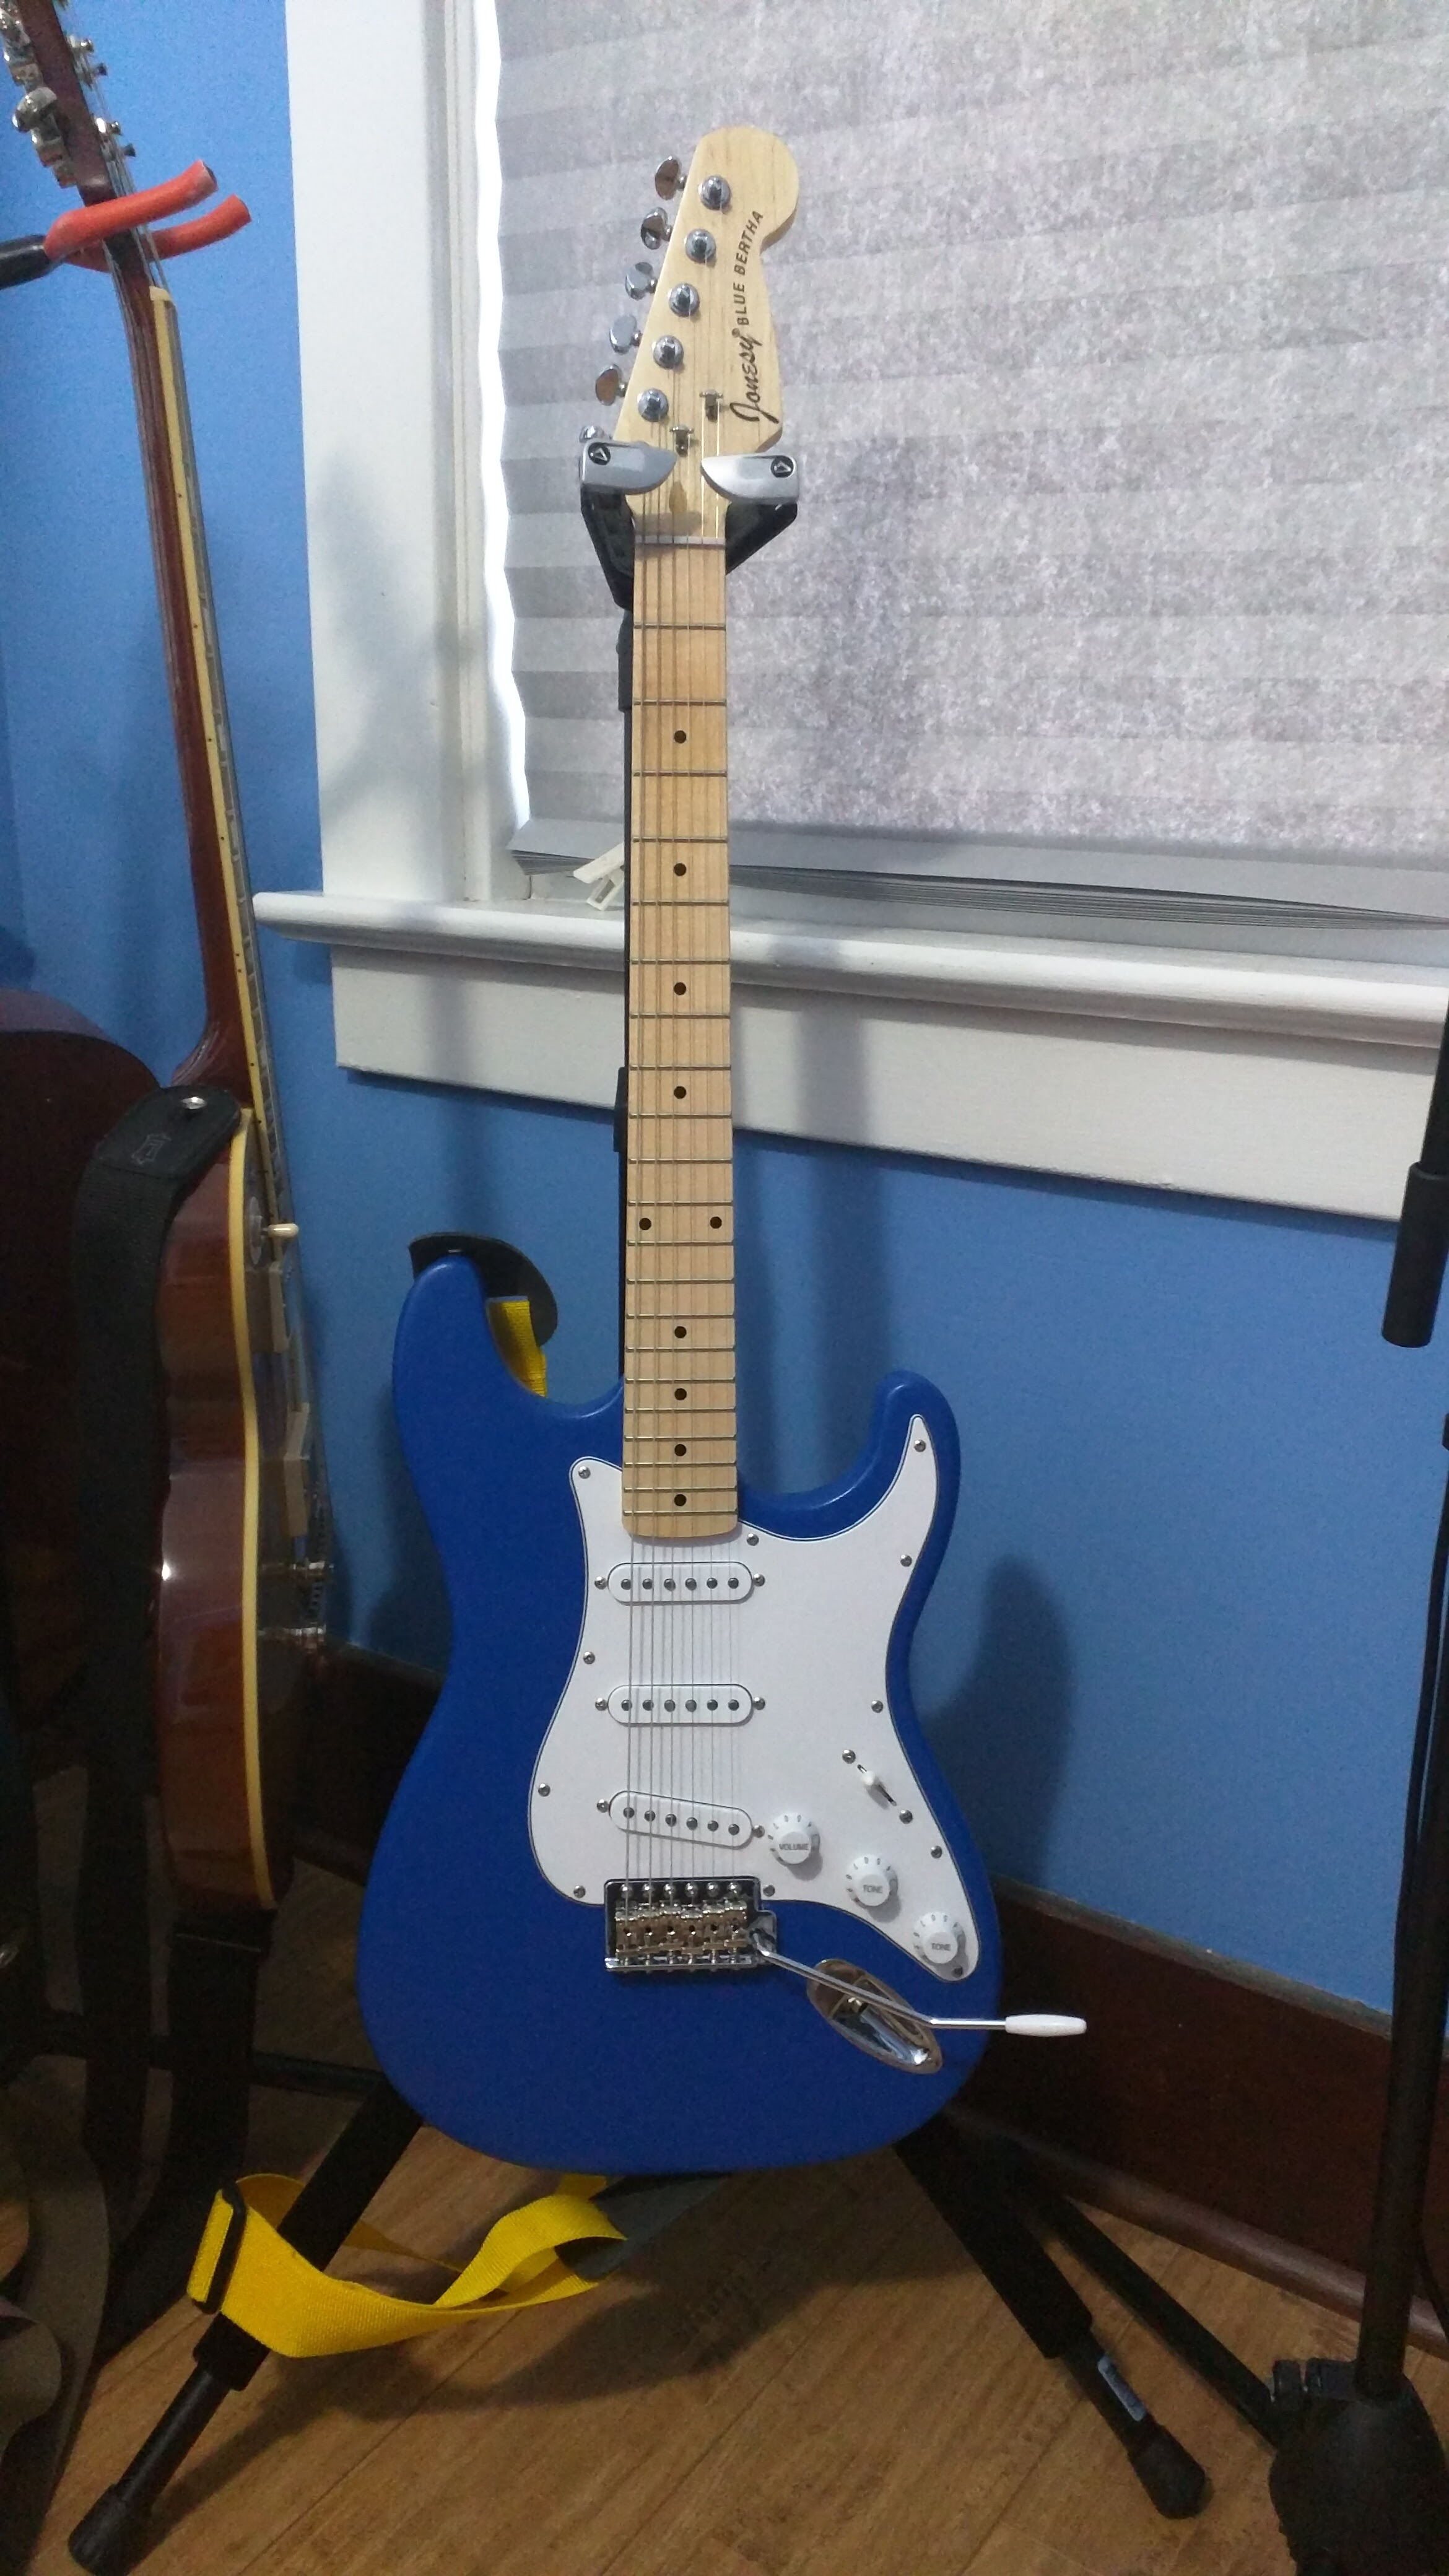 Jonesy Blue Bertha My First Partscaster Electric Guitar Build Fender Stratocaster 5way Wiring Kit Crl Switch Cts Pots